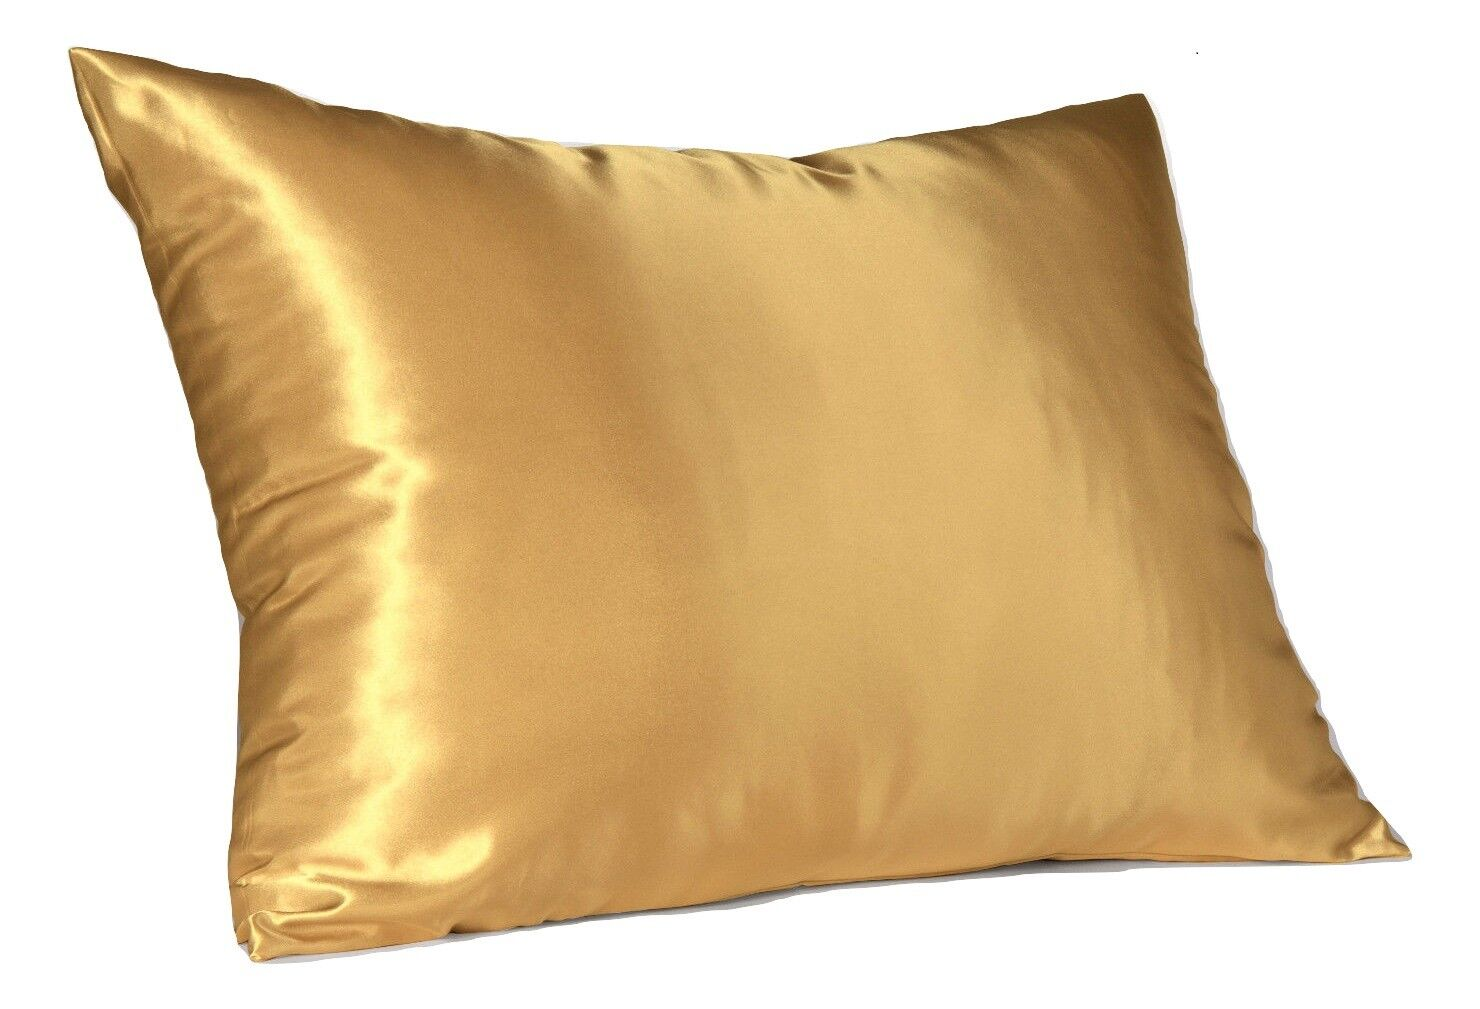 Satin Pillowcases With Zipper Luxury Satin Pillowcase With Zipper Standard Size Silky Pillow Case For Hair